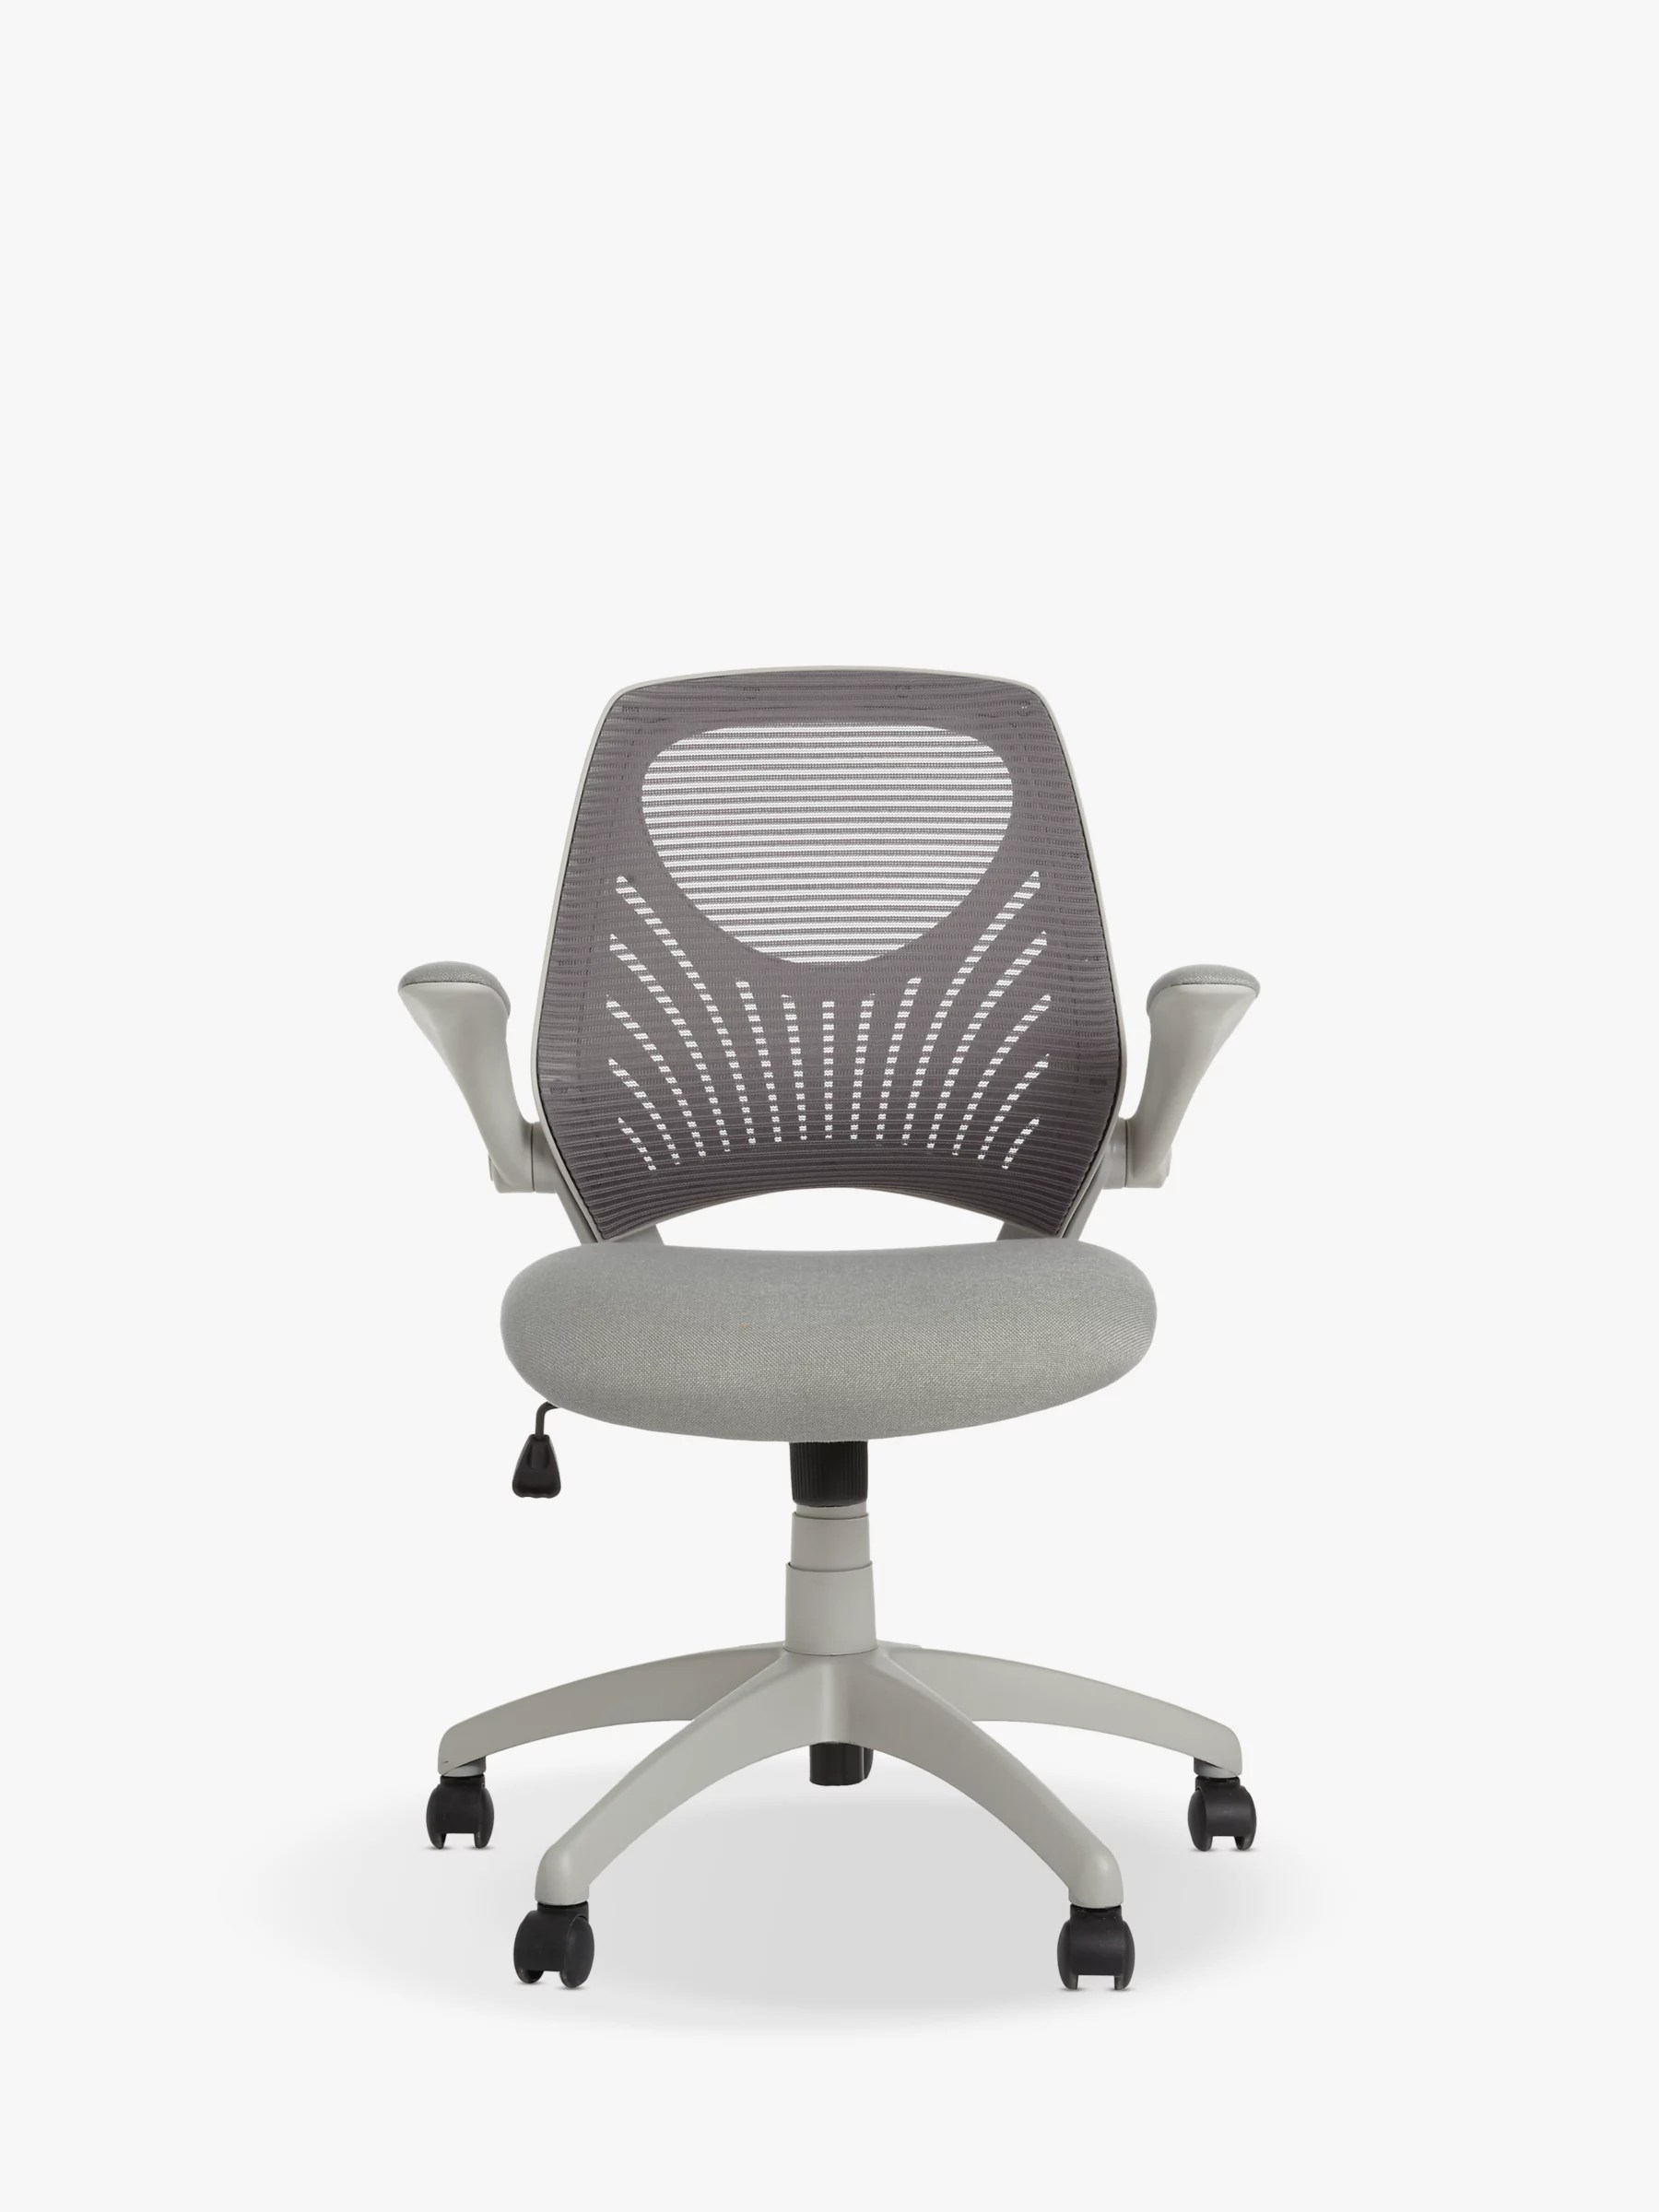 Workpro Commercial Mesh Back Executive Chair House By John Lewis Hinton Office Chair At John Lewis